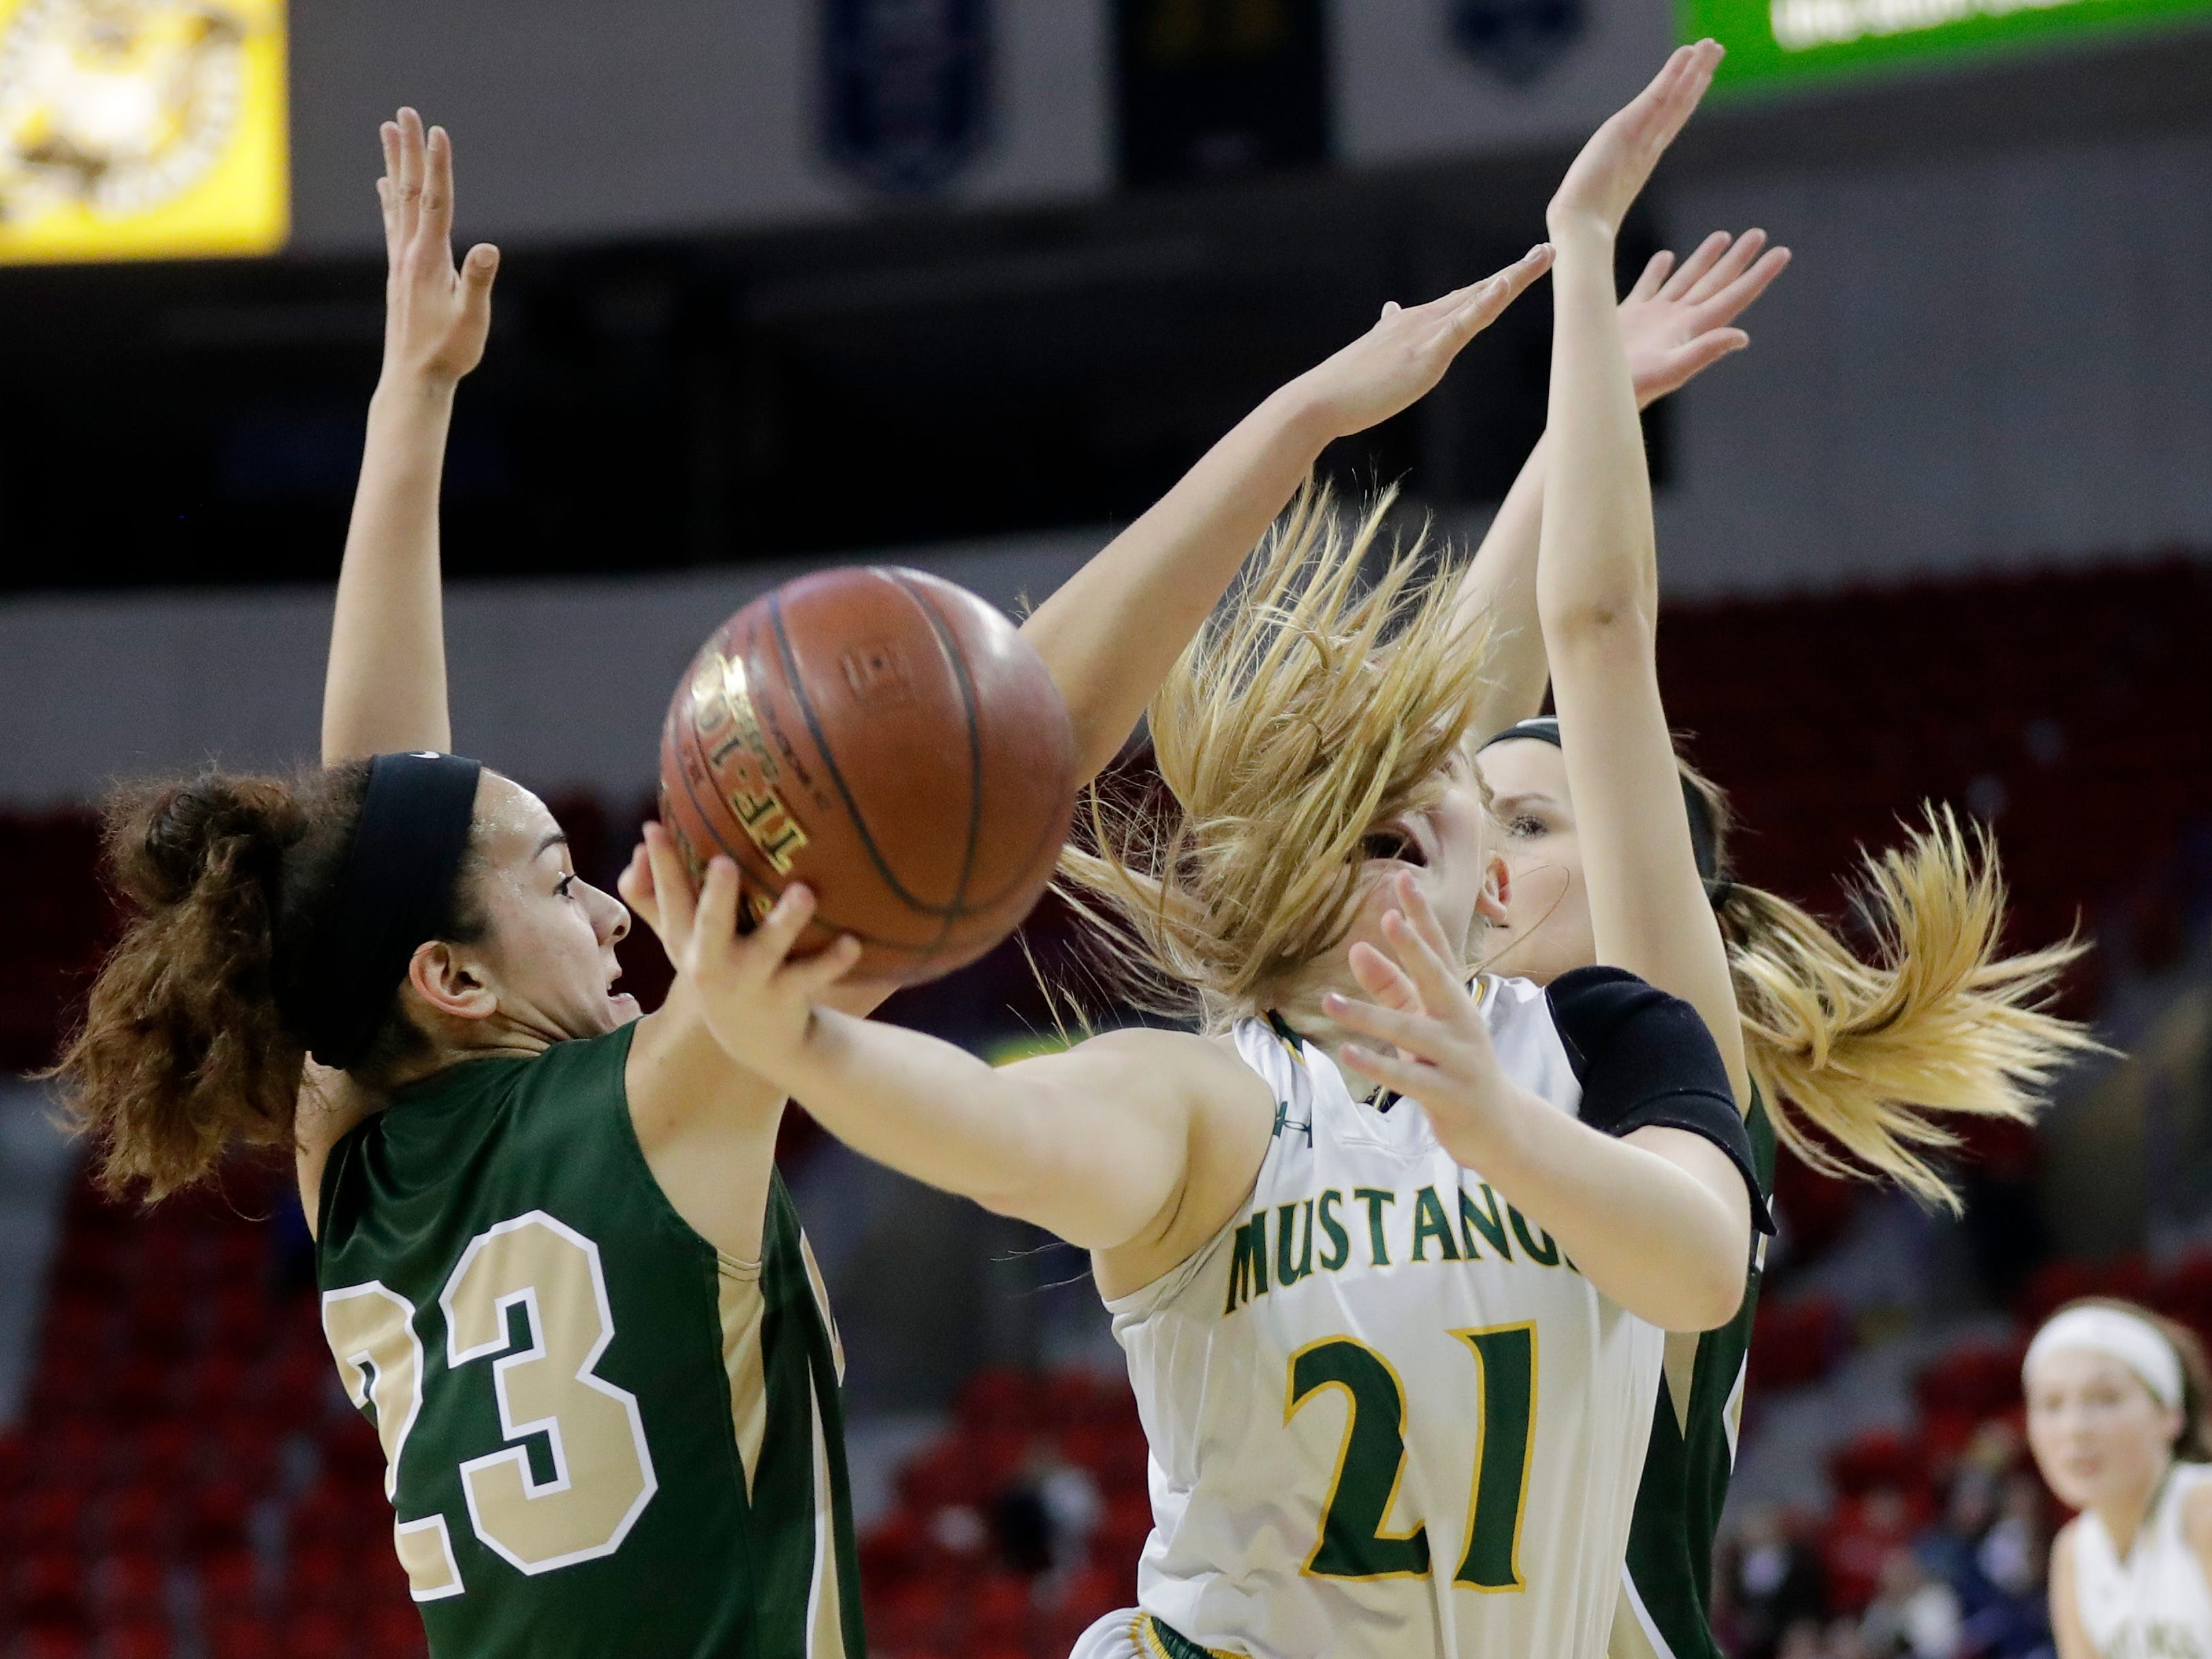 Melrose-Mindoro's Katie Christopherson (21) gets fouled by Colby's Vanessa Lopez (23) in a Division 3 semifinal at the WIAA state girls basketball tournament at the Resch Center on Thursday, March 7, 2019, in Ashwaubenon, Wis.